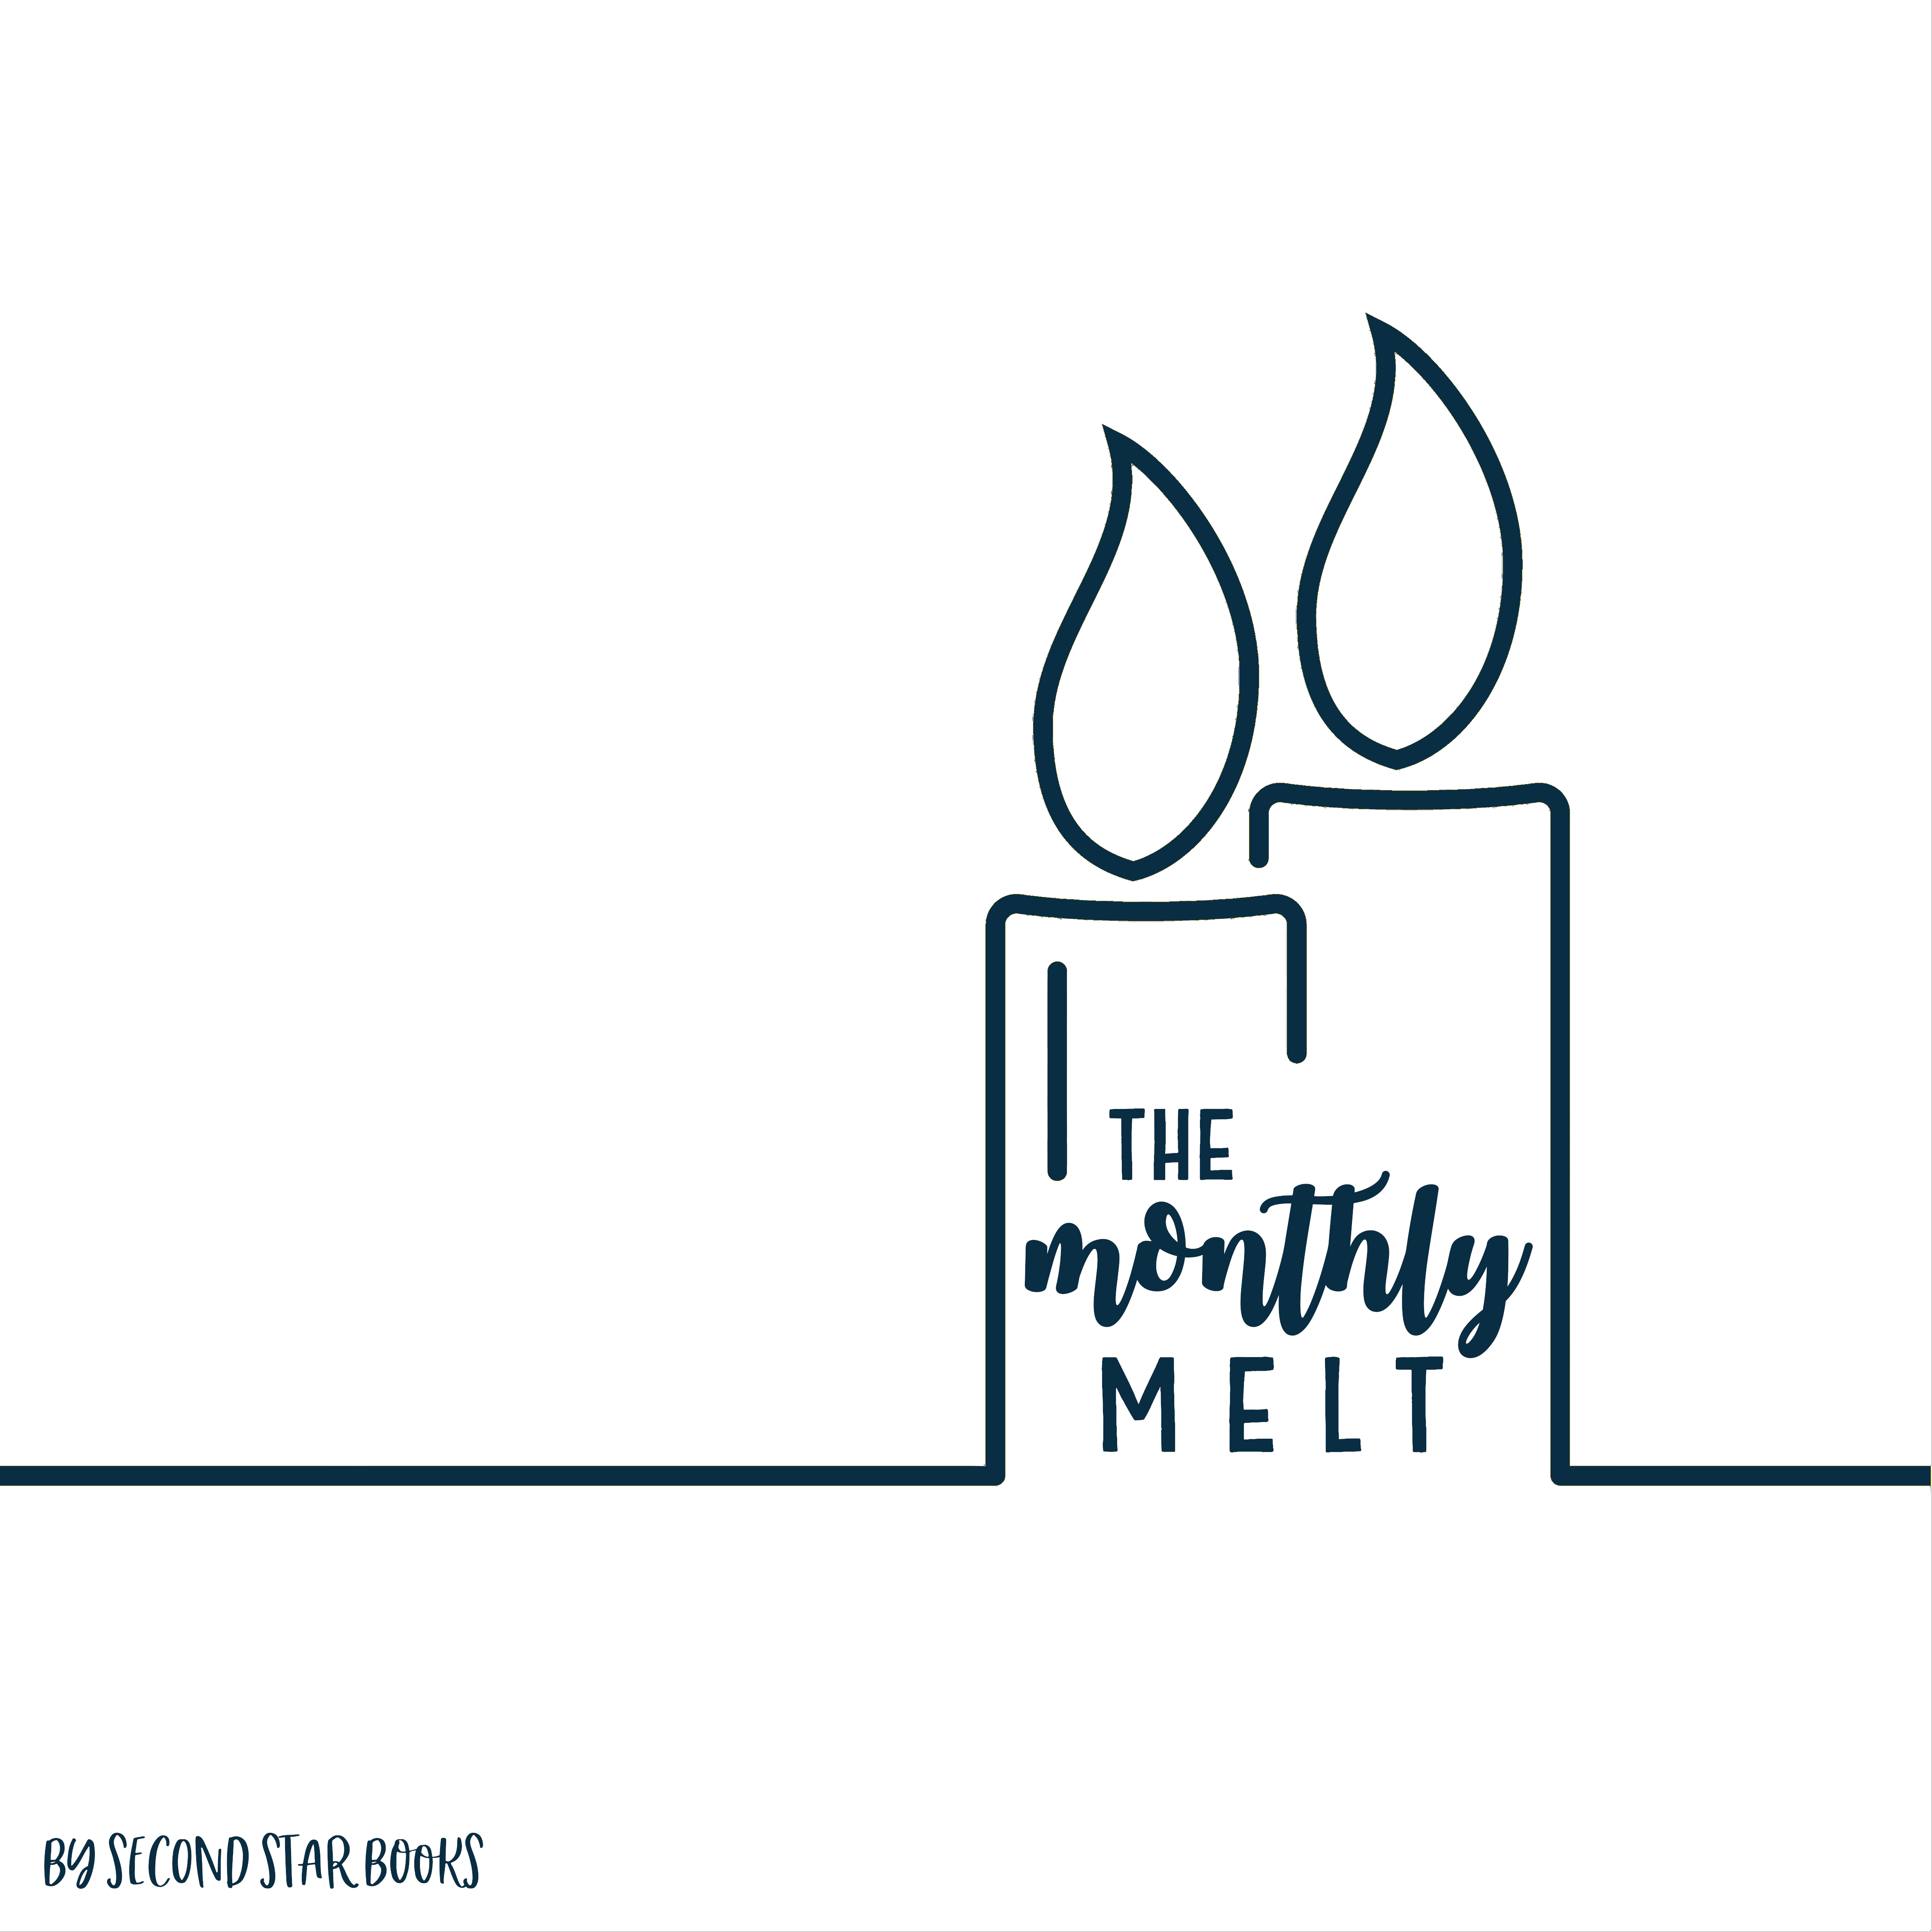 The Monthly Melt